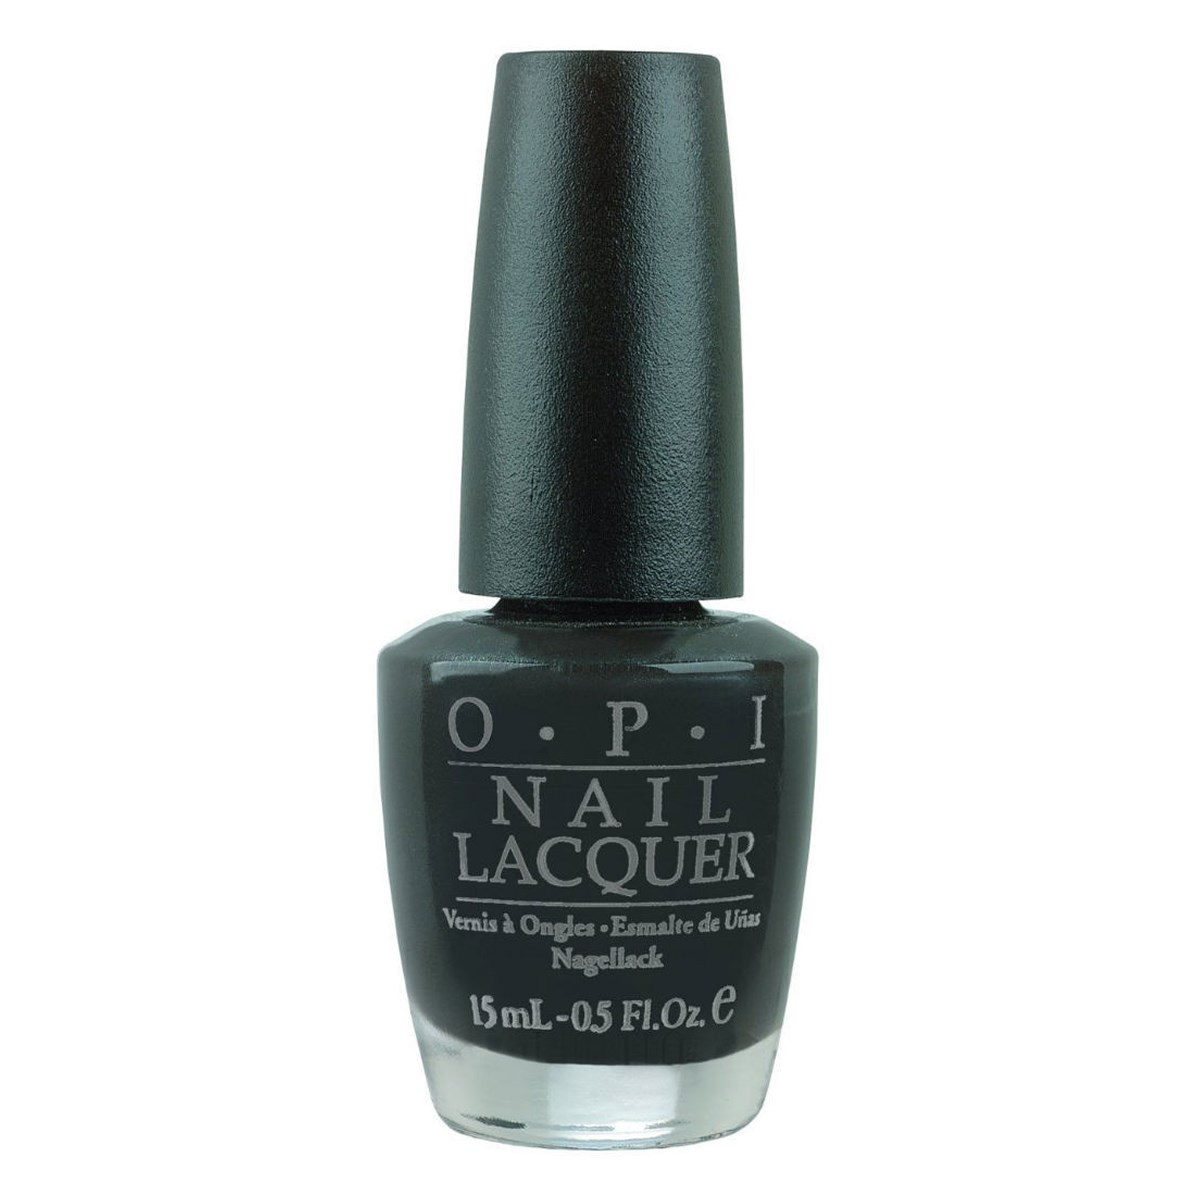 OPI Classic Nail Lacquer Lady in Black